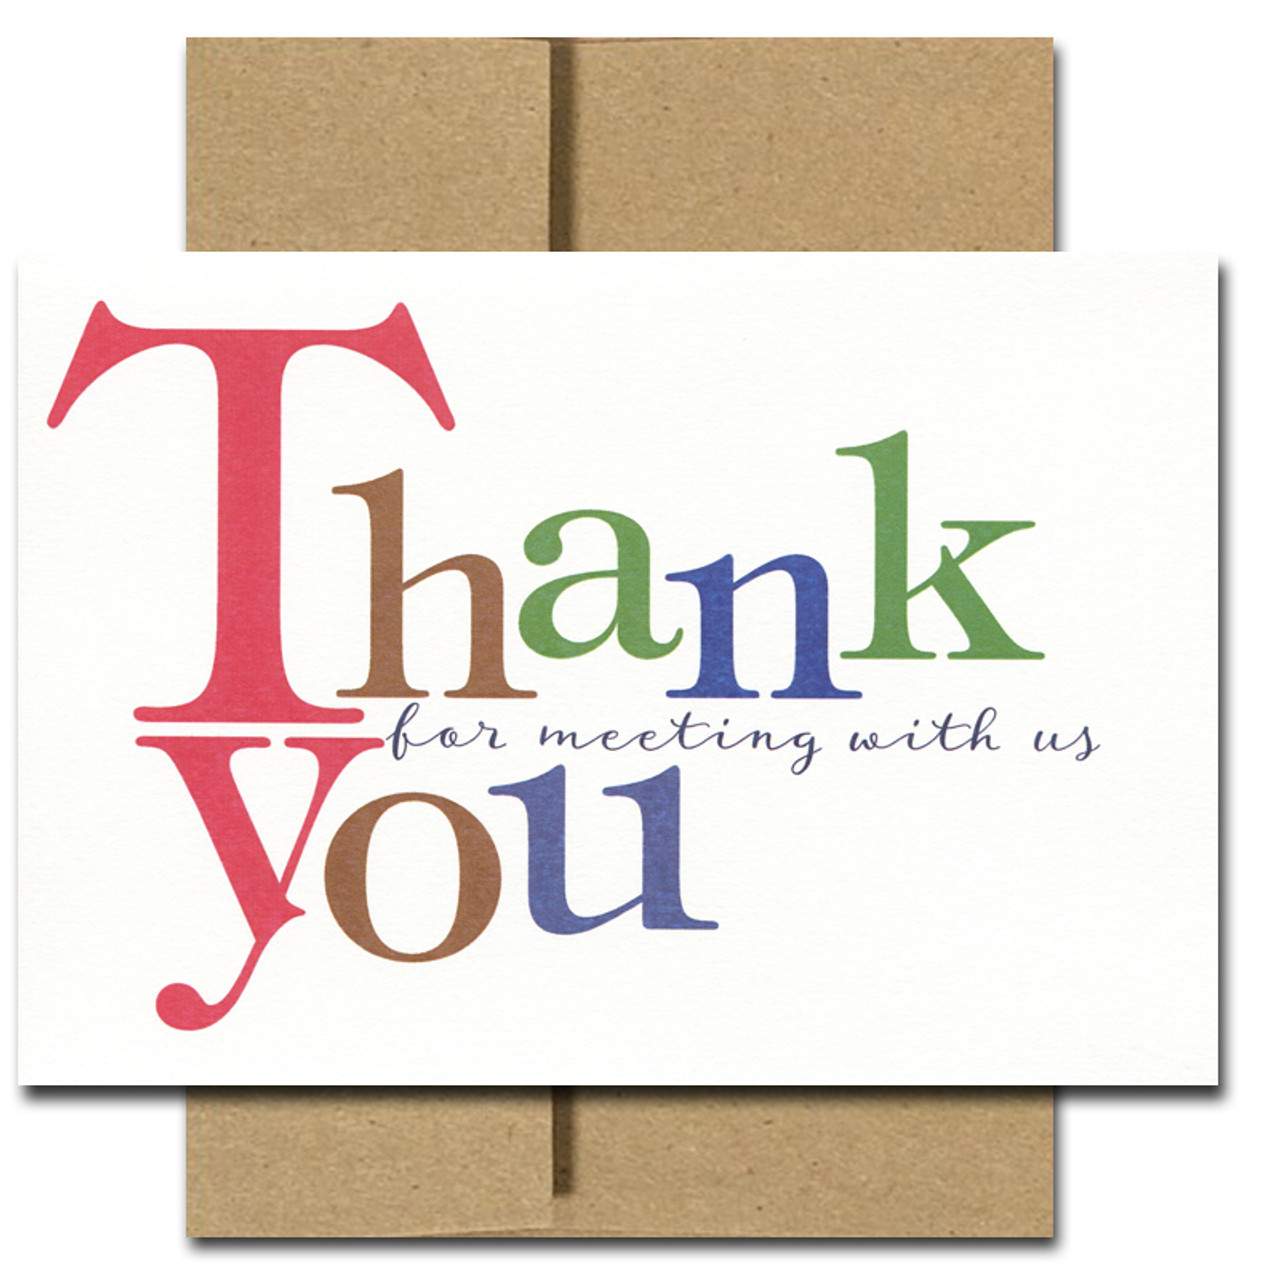 Meeting Appreciation Card - Bold Letters. Cover reads: Thank You for meeting with us